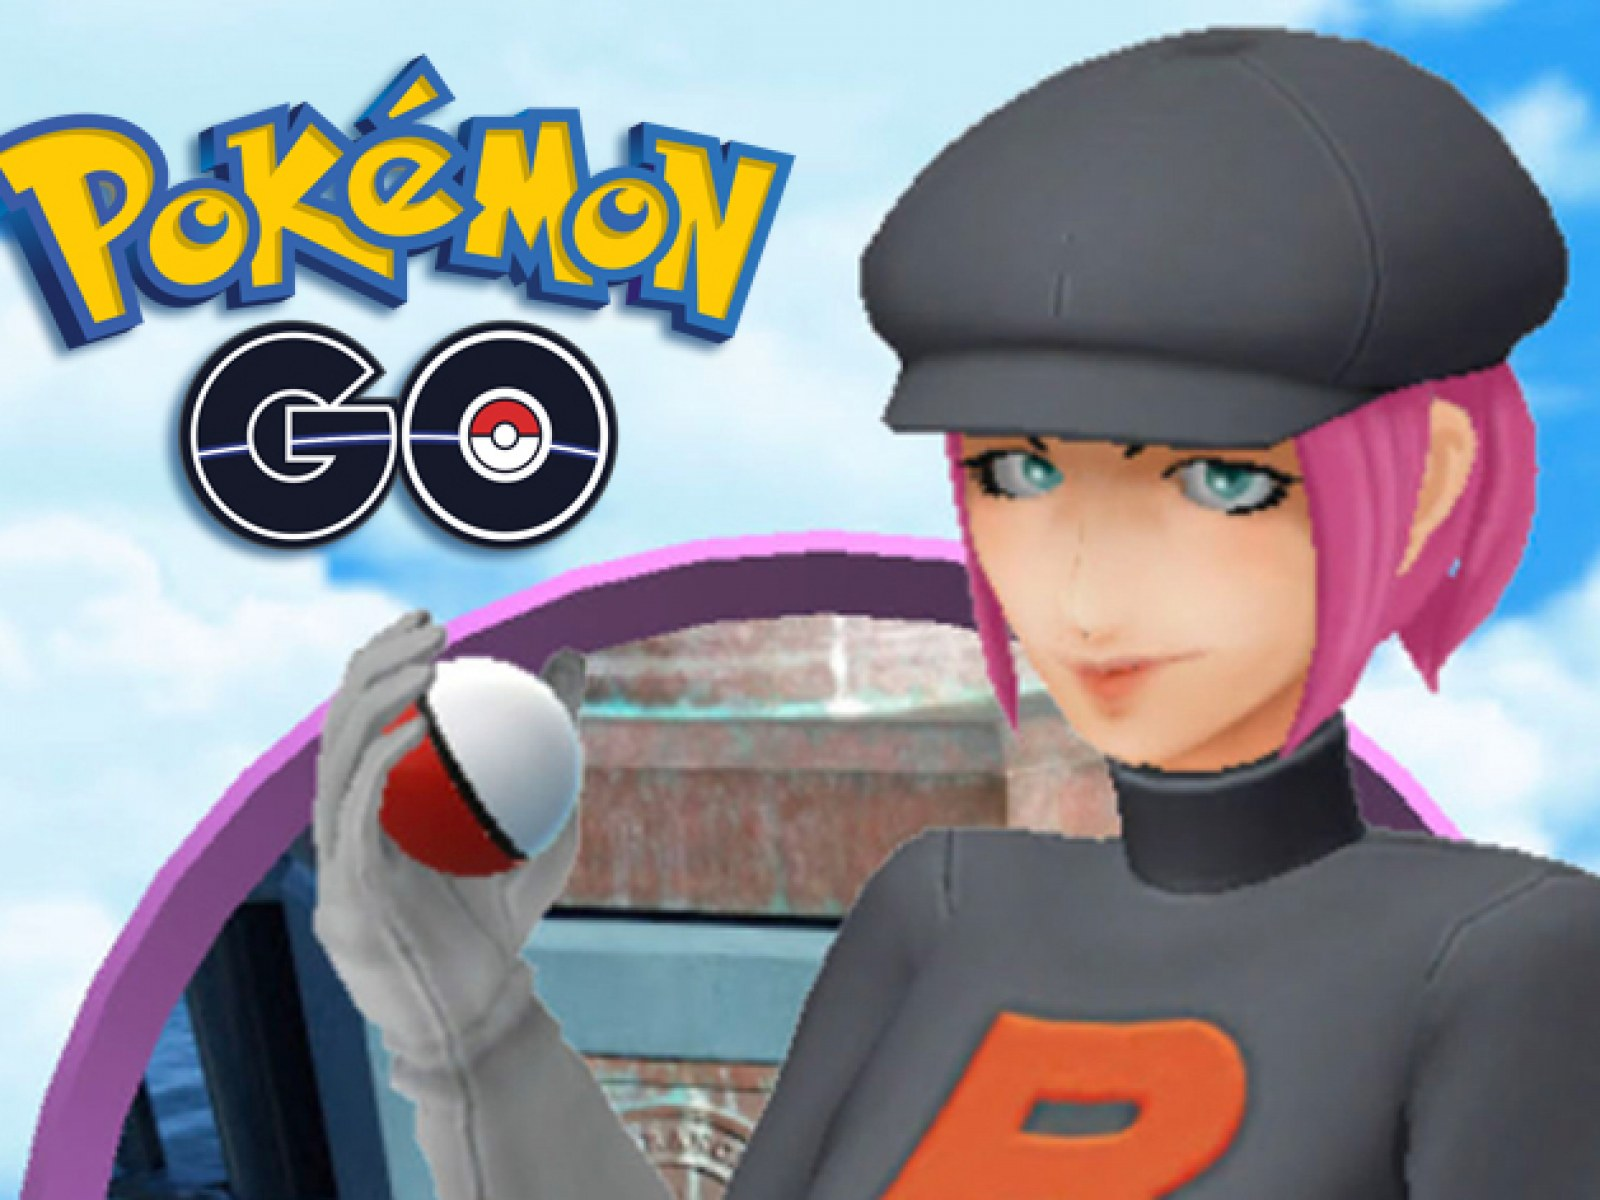 Pokémon Go' Update: Team Rocket Clues Found in Data Mine